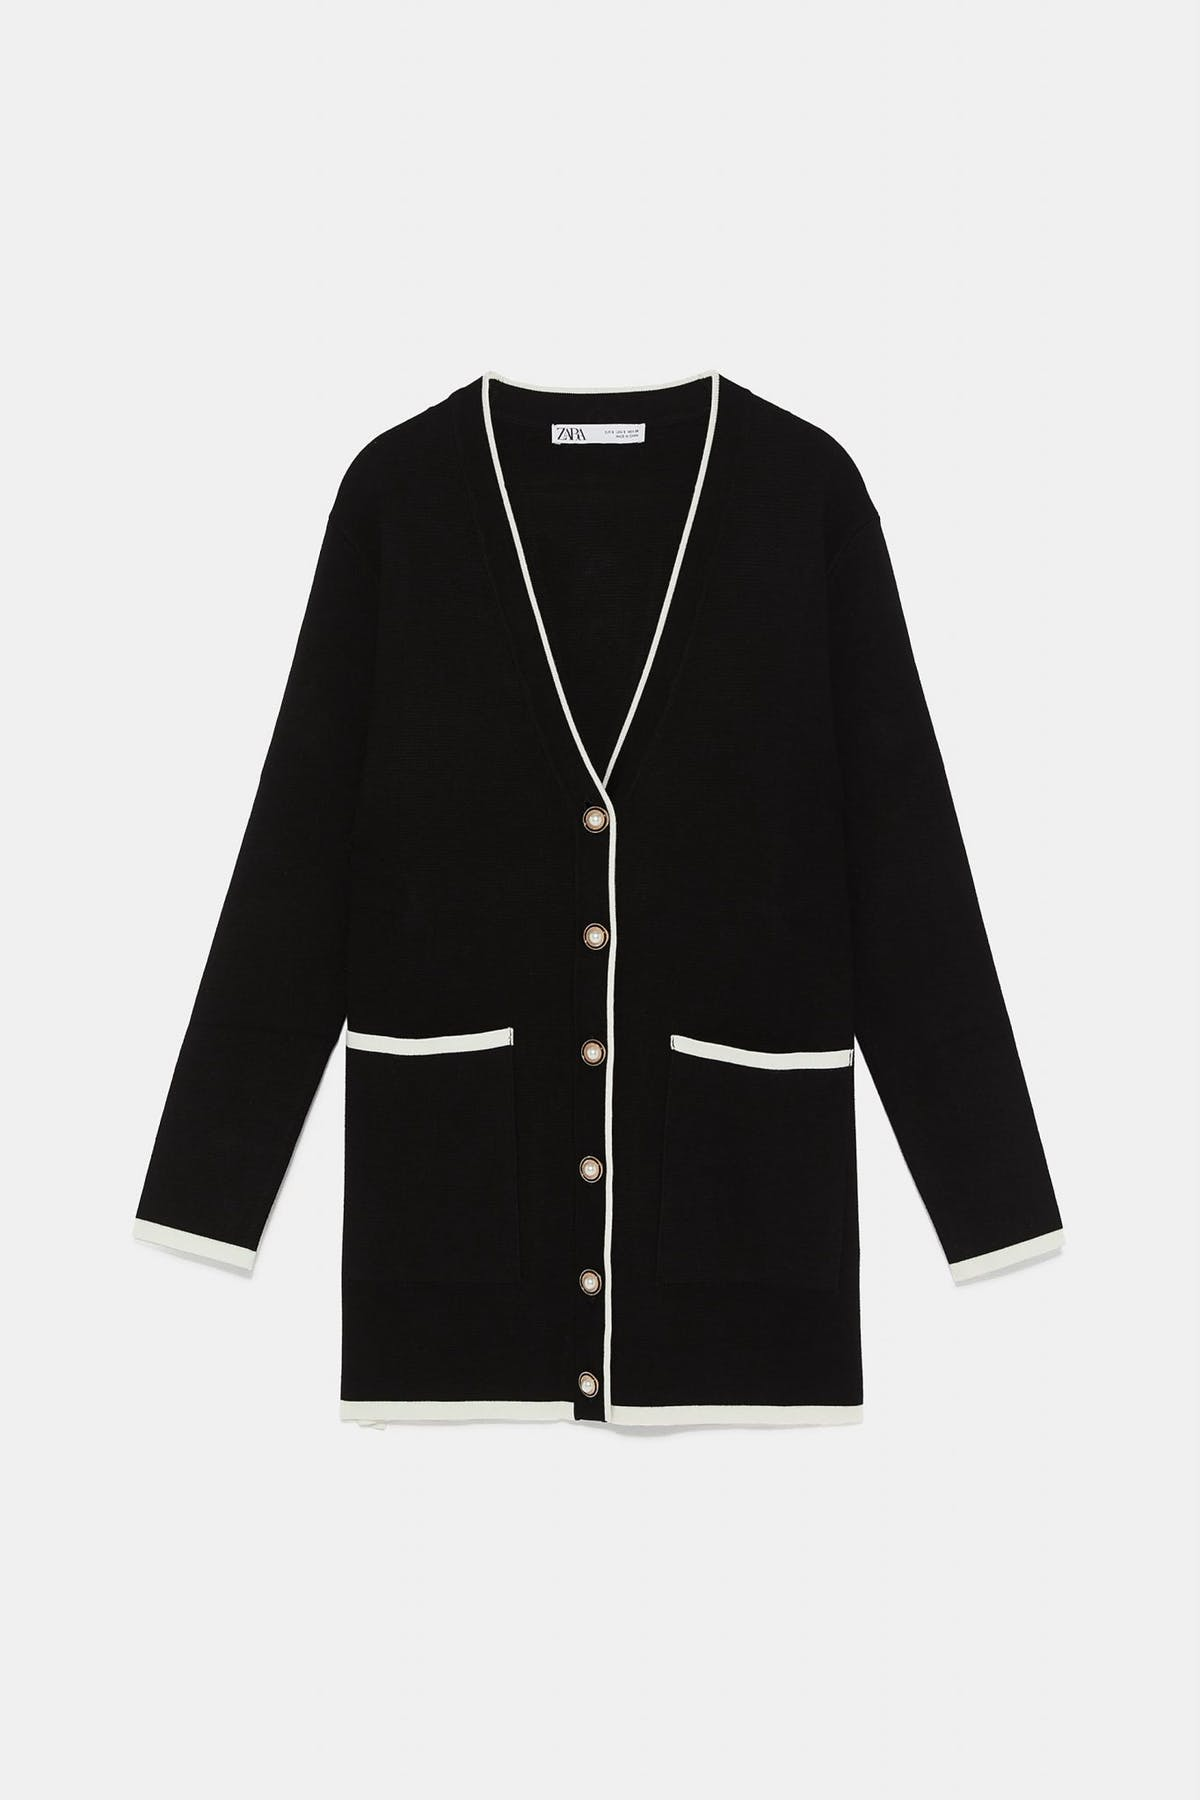 8765223d The cardigan is an ideal mid-season layer. Here's how to wear it